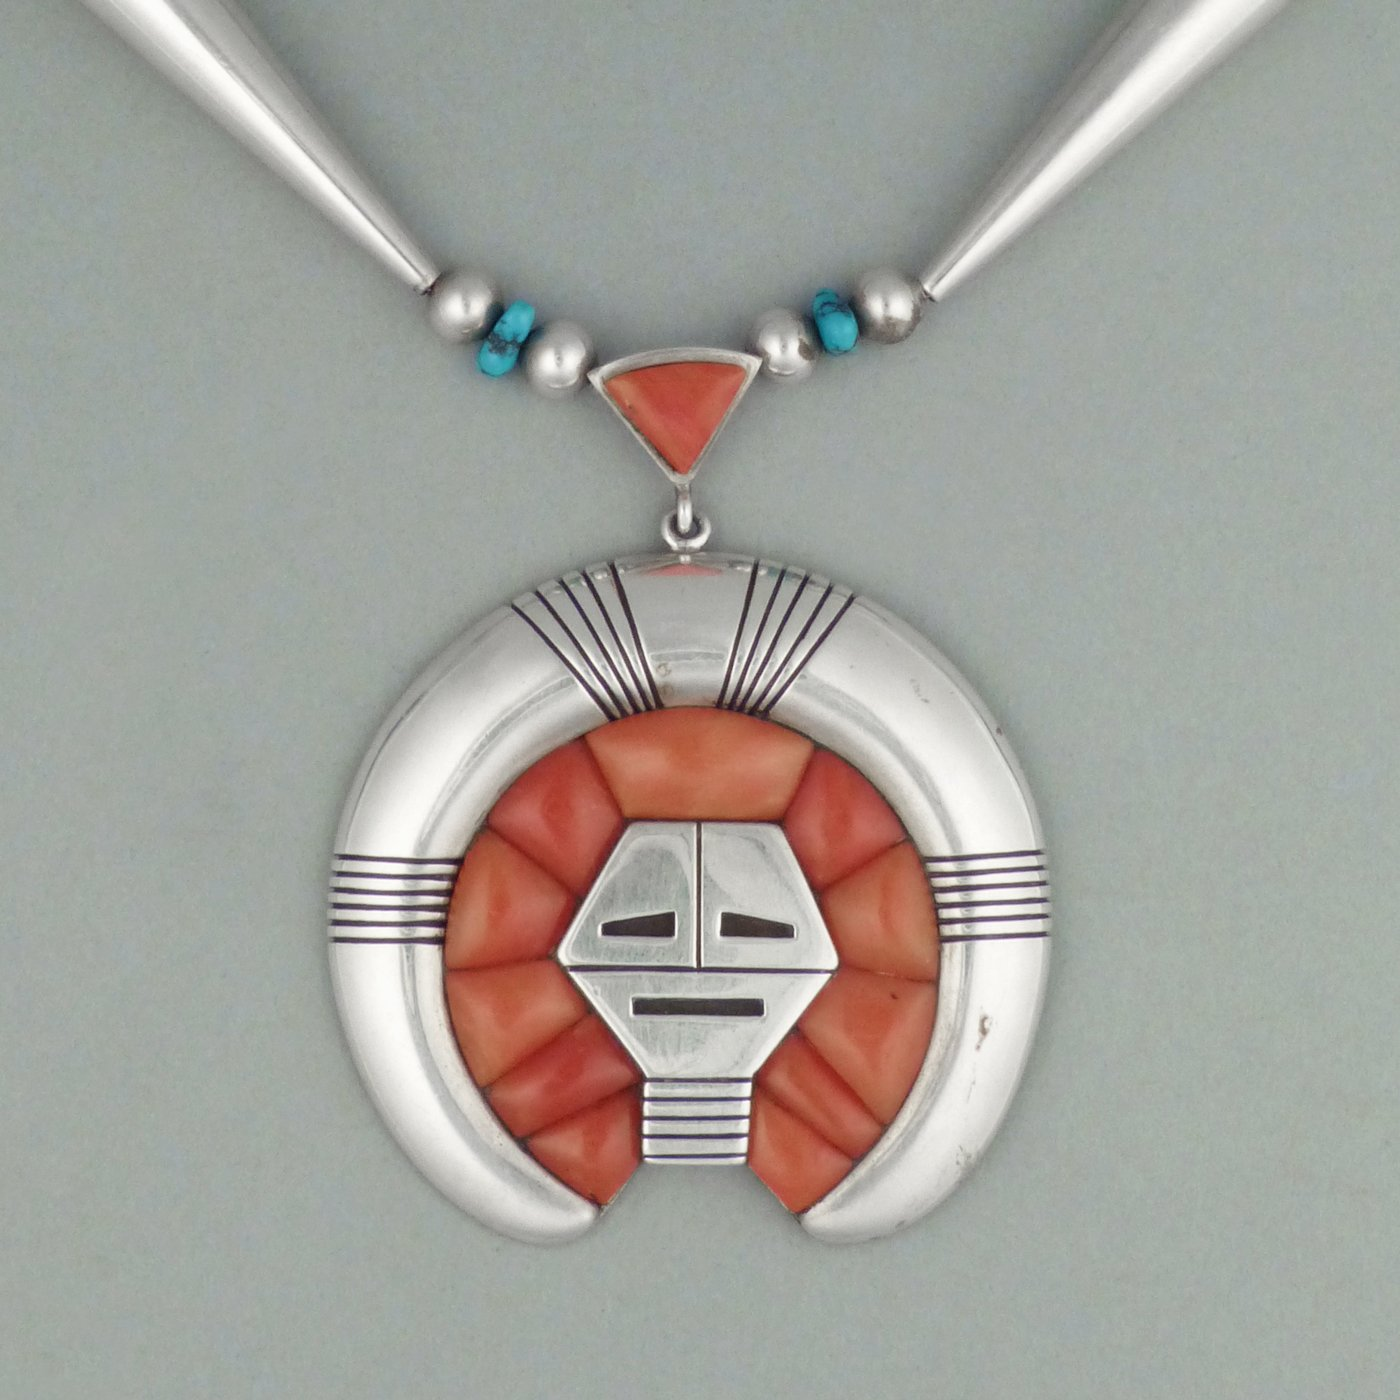 rjakesterlingnavajopendantnecklacewc jake r img designerjewelry navajo necklace pendant wc decatur sterling